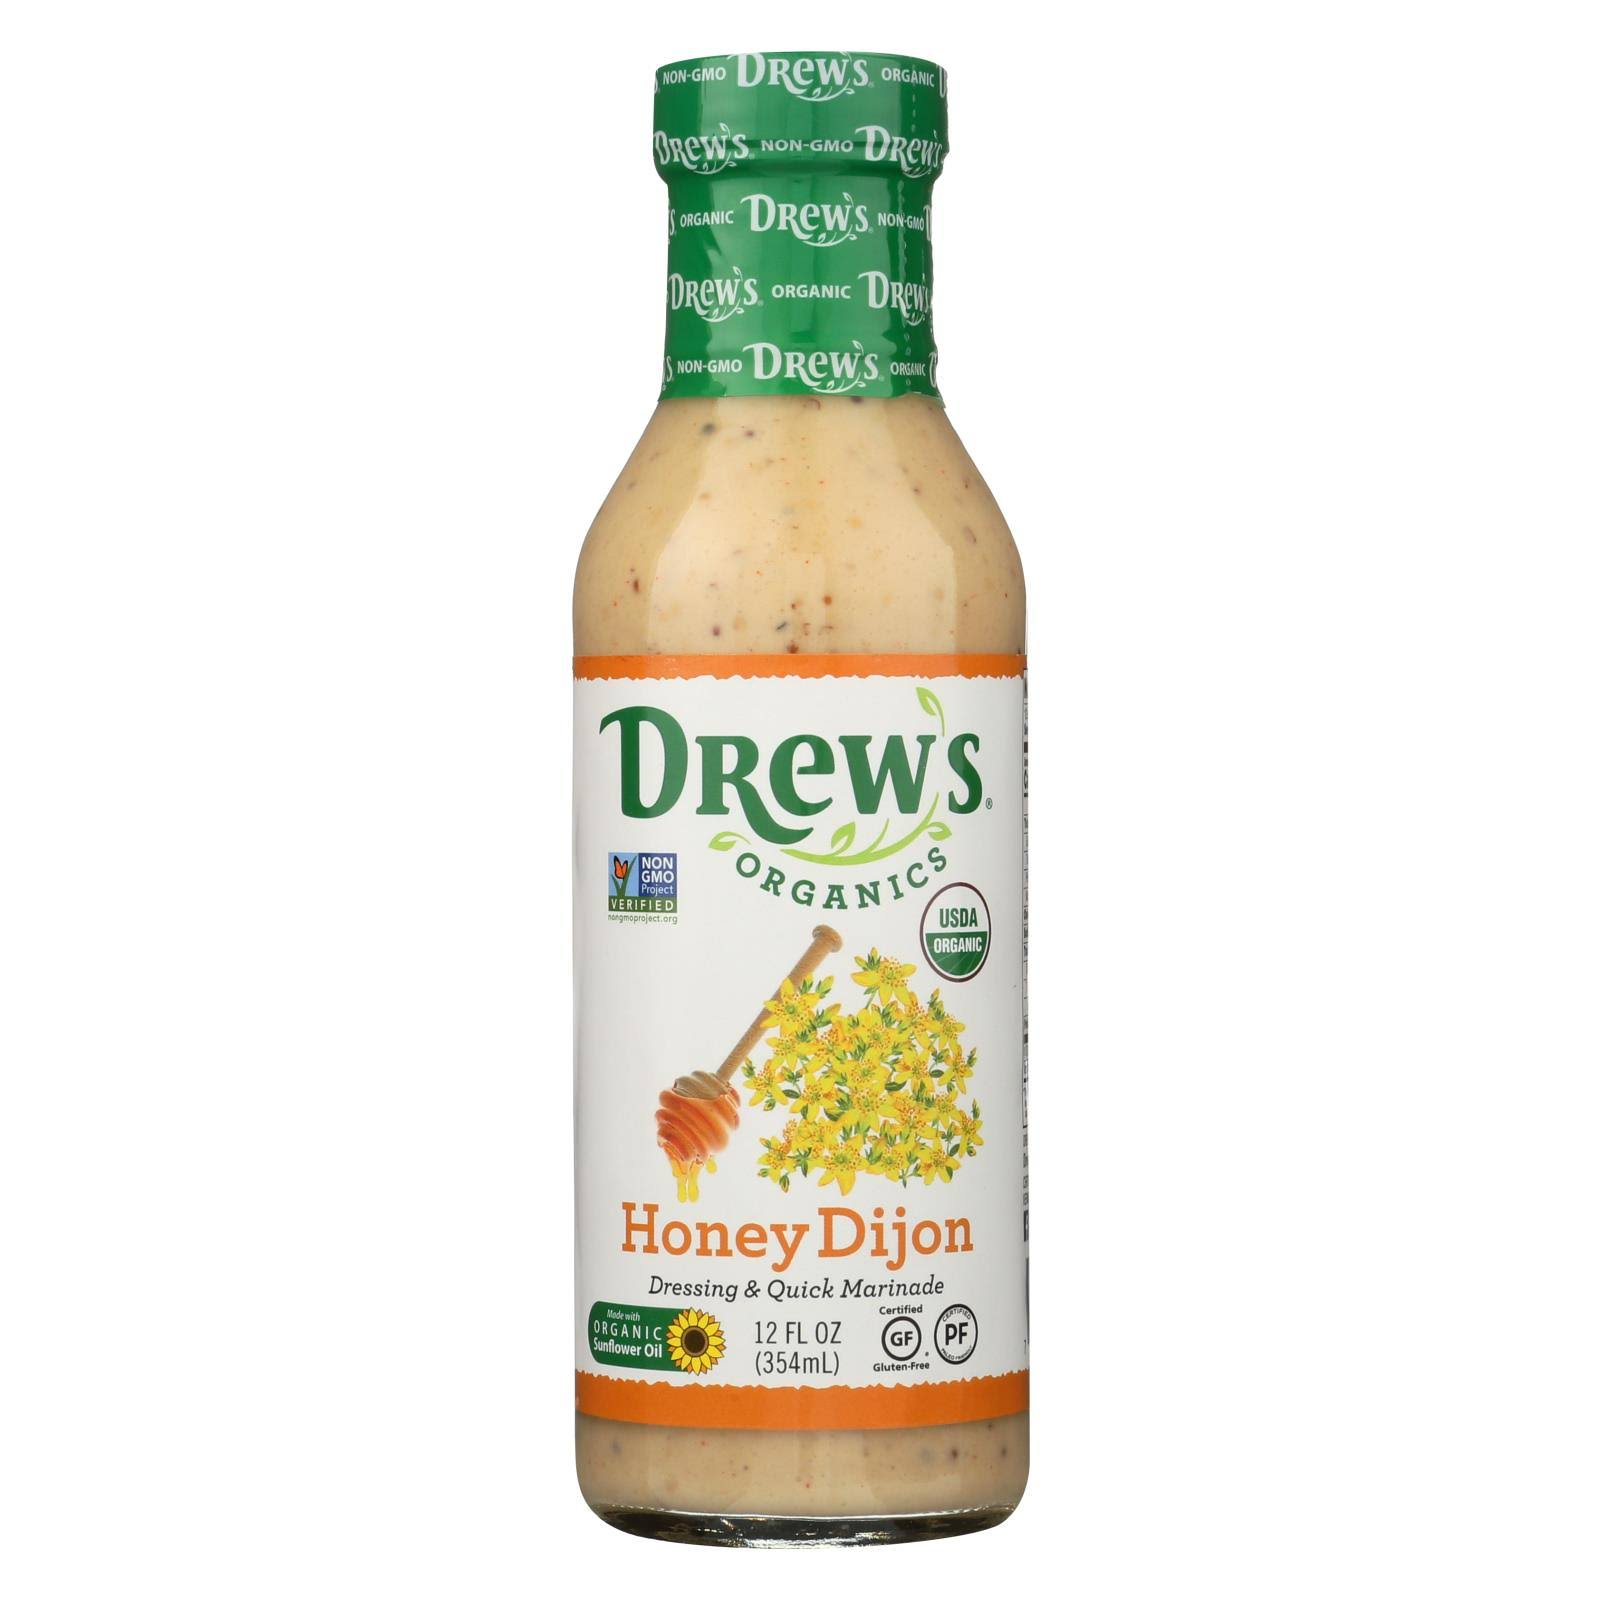 Drew's Organics - Salad Dressing - Honey Dijon - 12 oz.